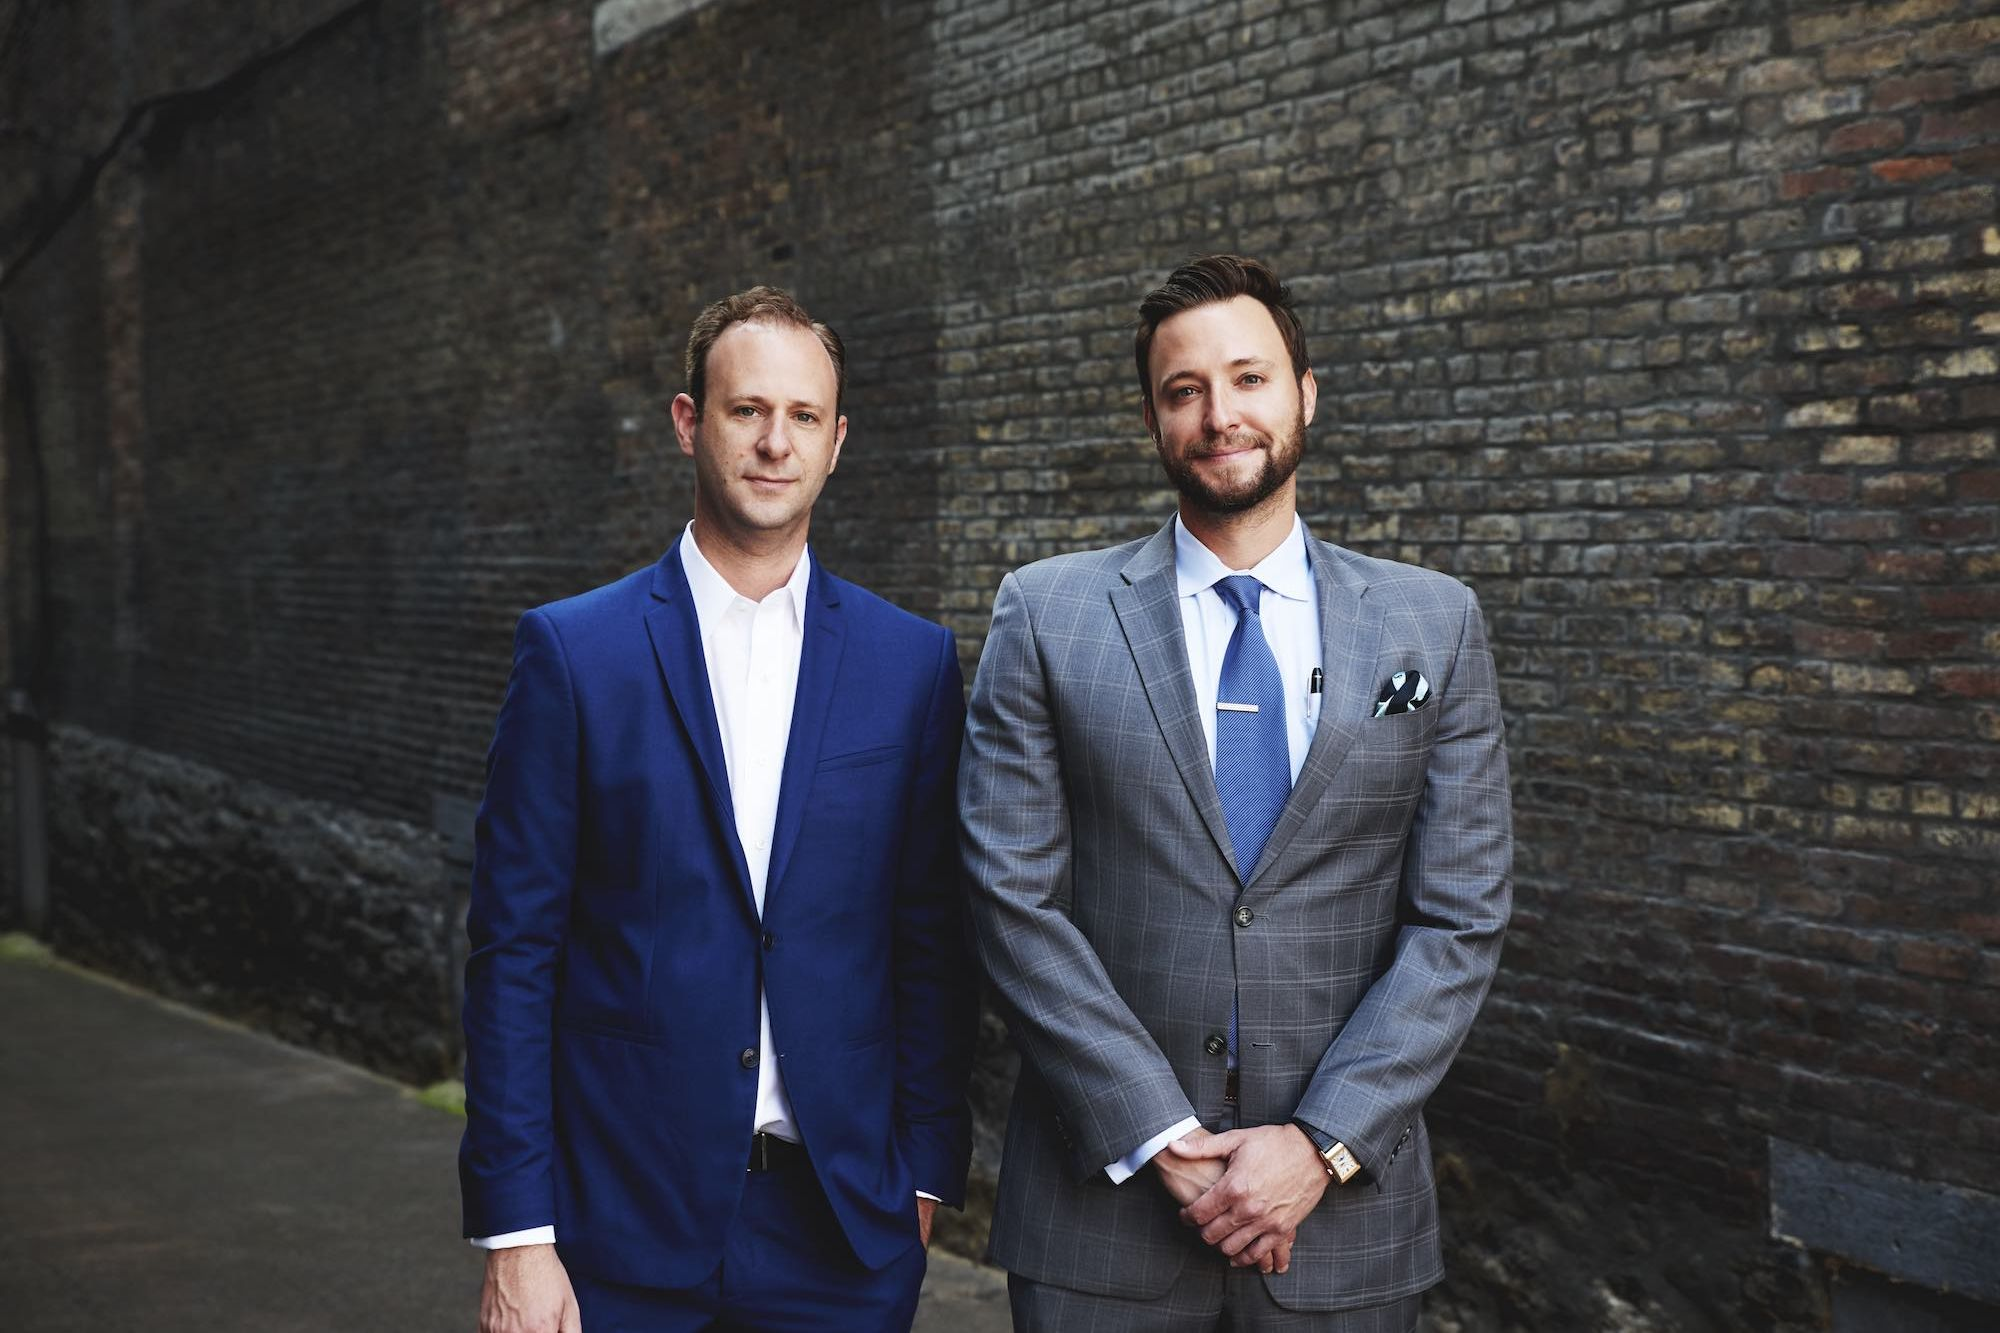 'When People Don't Tell Us Our Ideas Are Crazy, We Get Worried.' How These Brothers Are Attacking the Hospitality Industry.